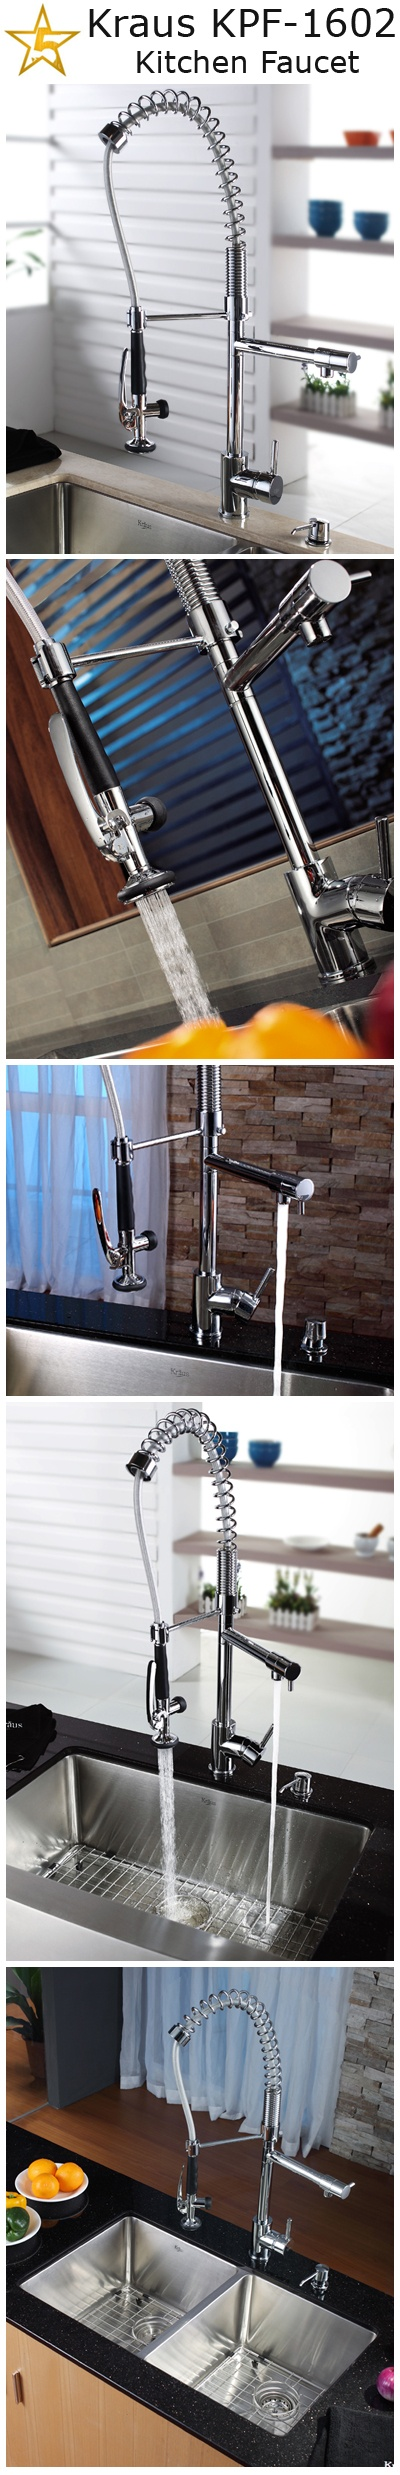 Kraus KPF-1602 Single Lever Pull Out Kitchen Faucet